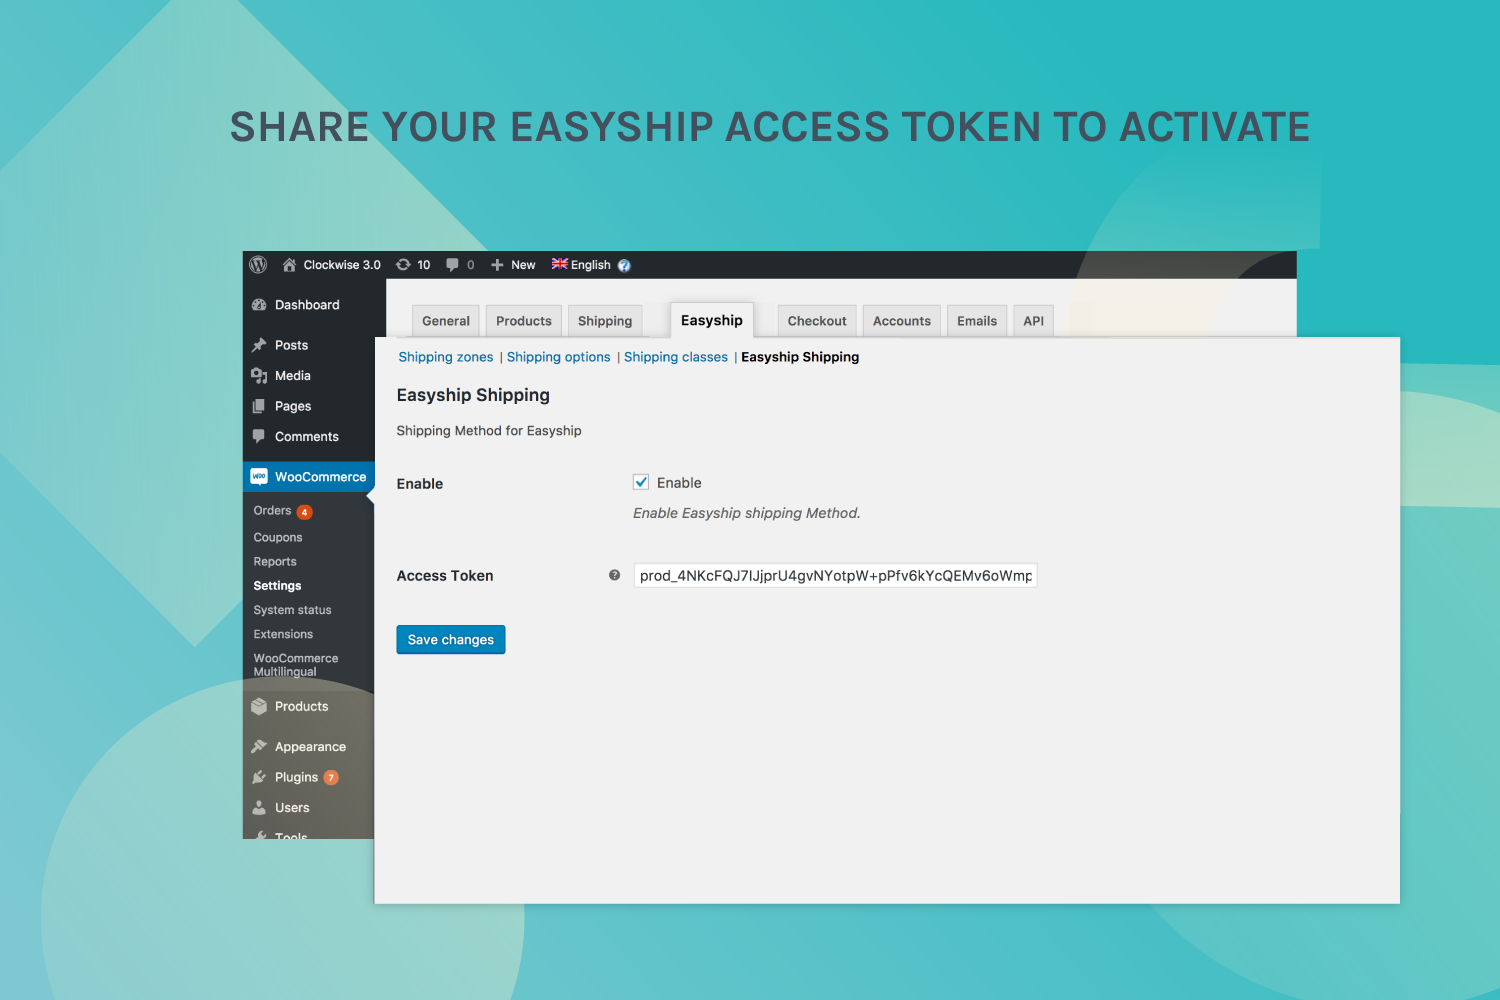 Share your Easyship access token to activate